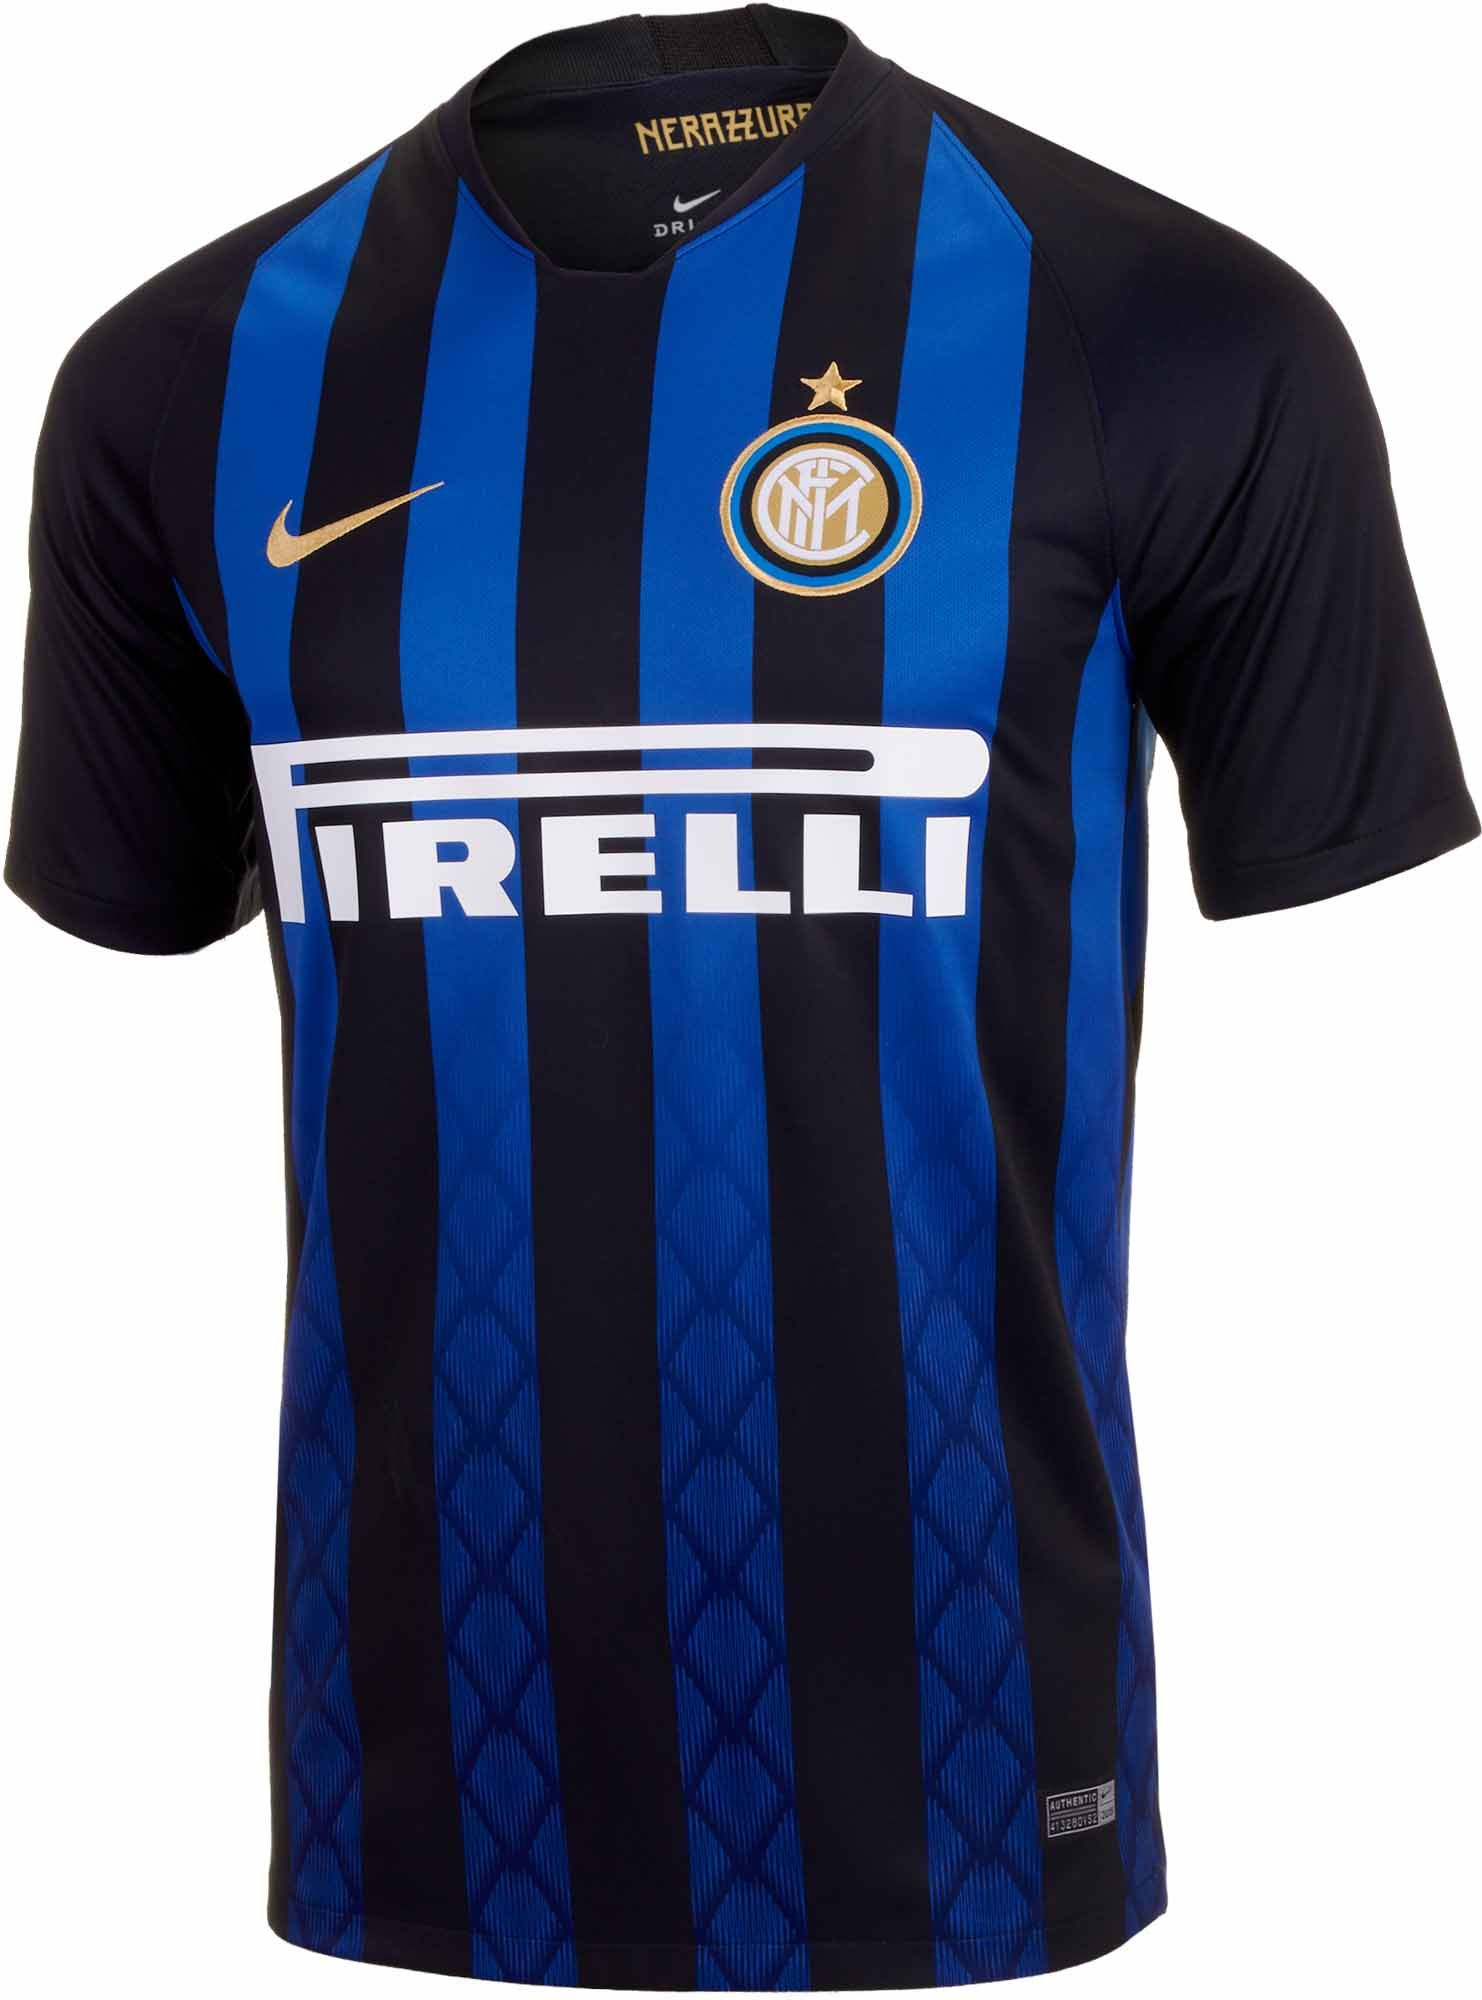 2018 19 Nike Inter Milan Home Jersey. Buy it from SoccerPro ... 97a1a612ea9c5